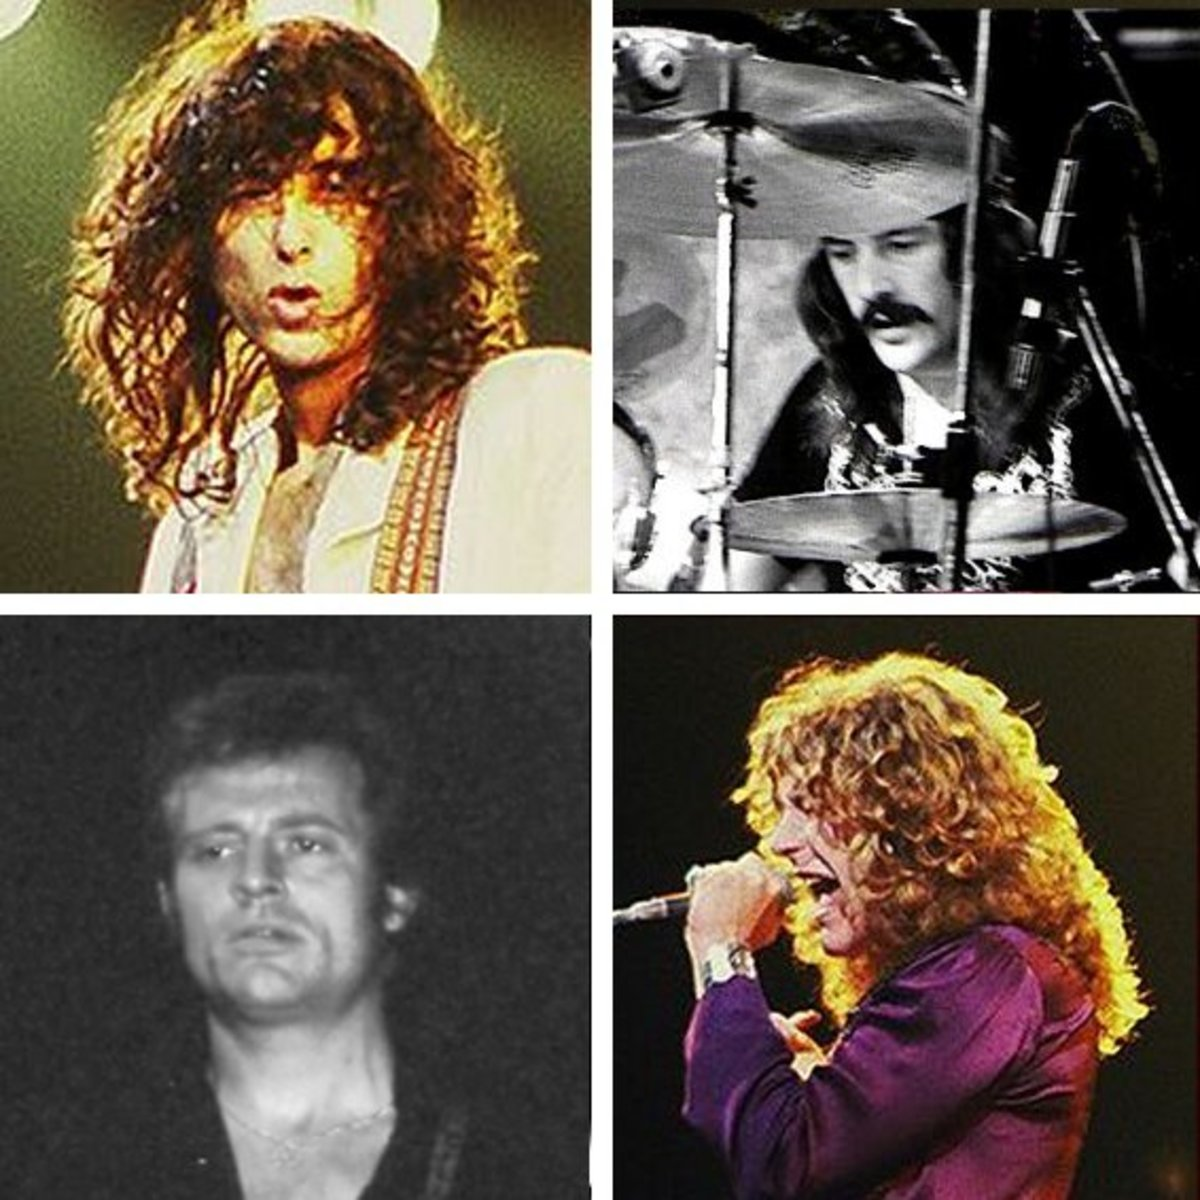 By File:Jimmy Page with Robert Plant 2 - Led Zeppelin - 1977.jpg: Jim Summaria File:John Bonham 1975.jpg: Dina Regine File:JohnPaulJones1980-2.jpg: Klaus Hiltscher  derivative work: Sabrebd [CC BY 3.0 (http://creativecommons.org/licenses/by/3.0)], vi